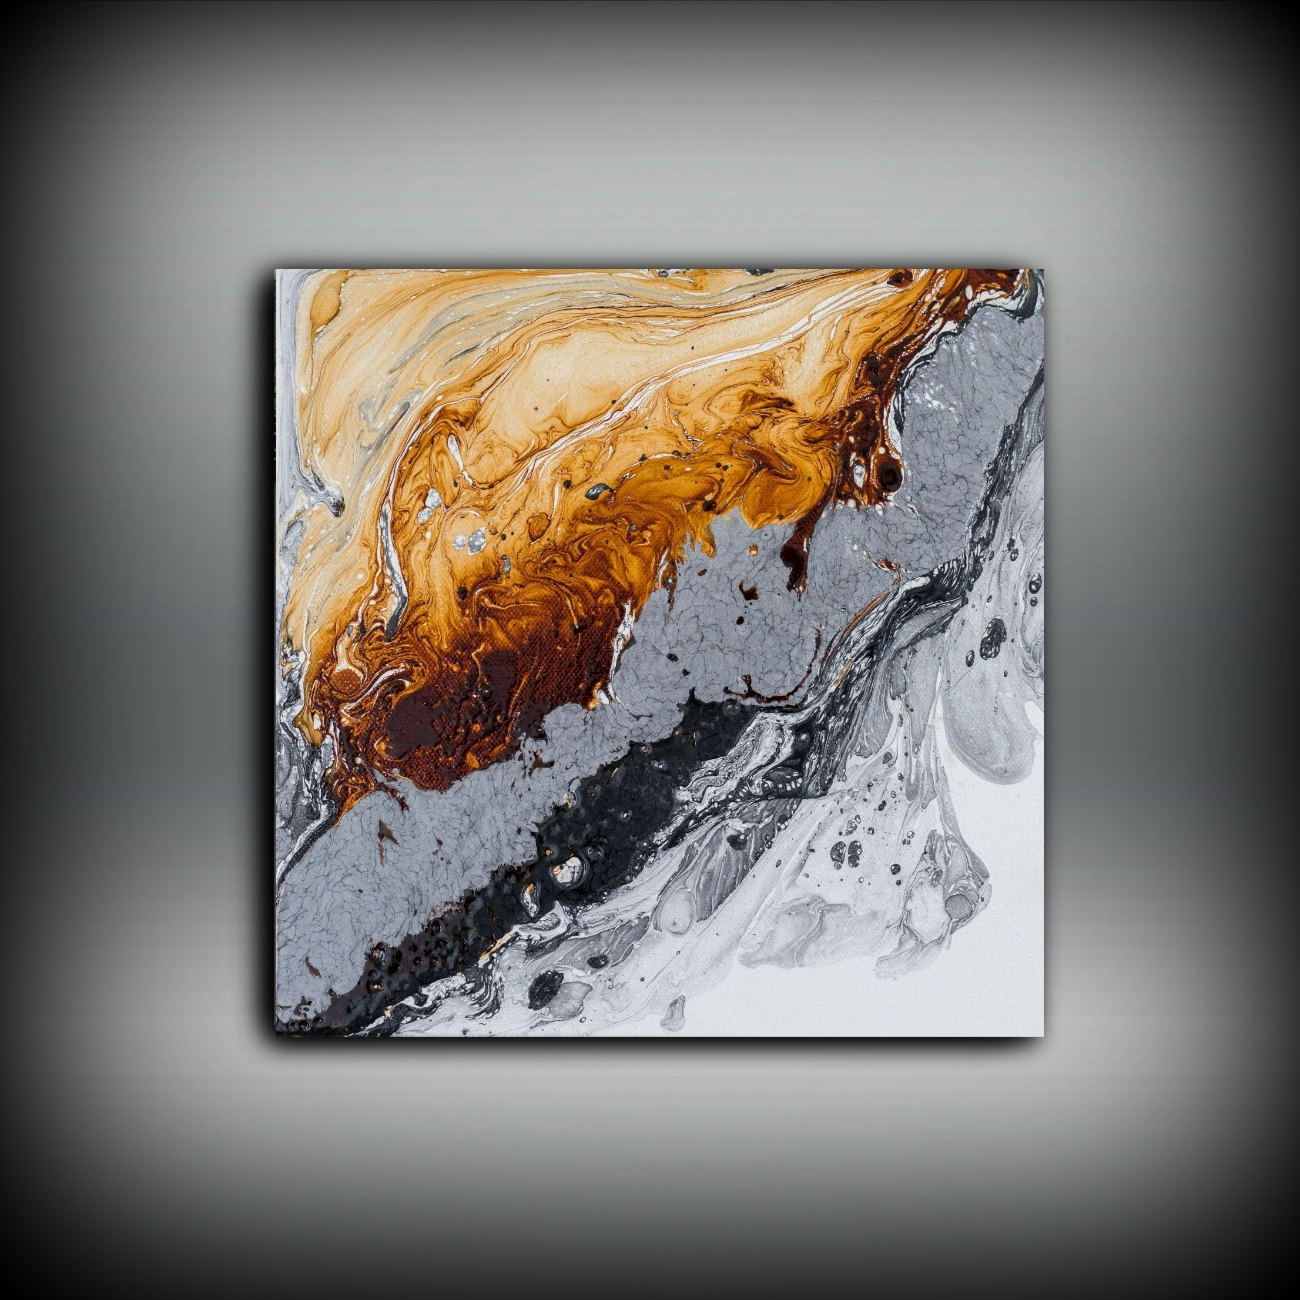 Original Painting Art Painting Oil Painting Abstract Painting Pertaining To Most Up To Date Original Abstract Wall Art (Gallery 19 of 20)